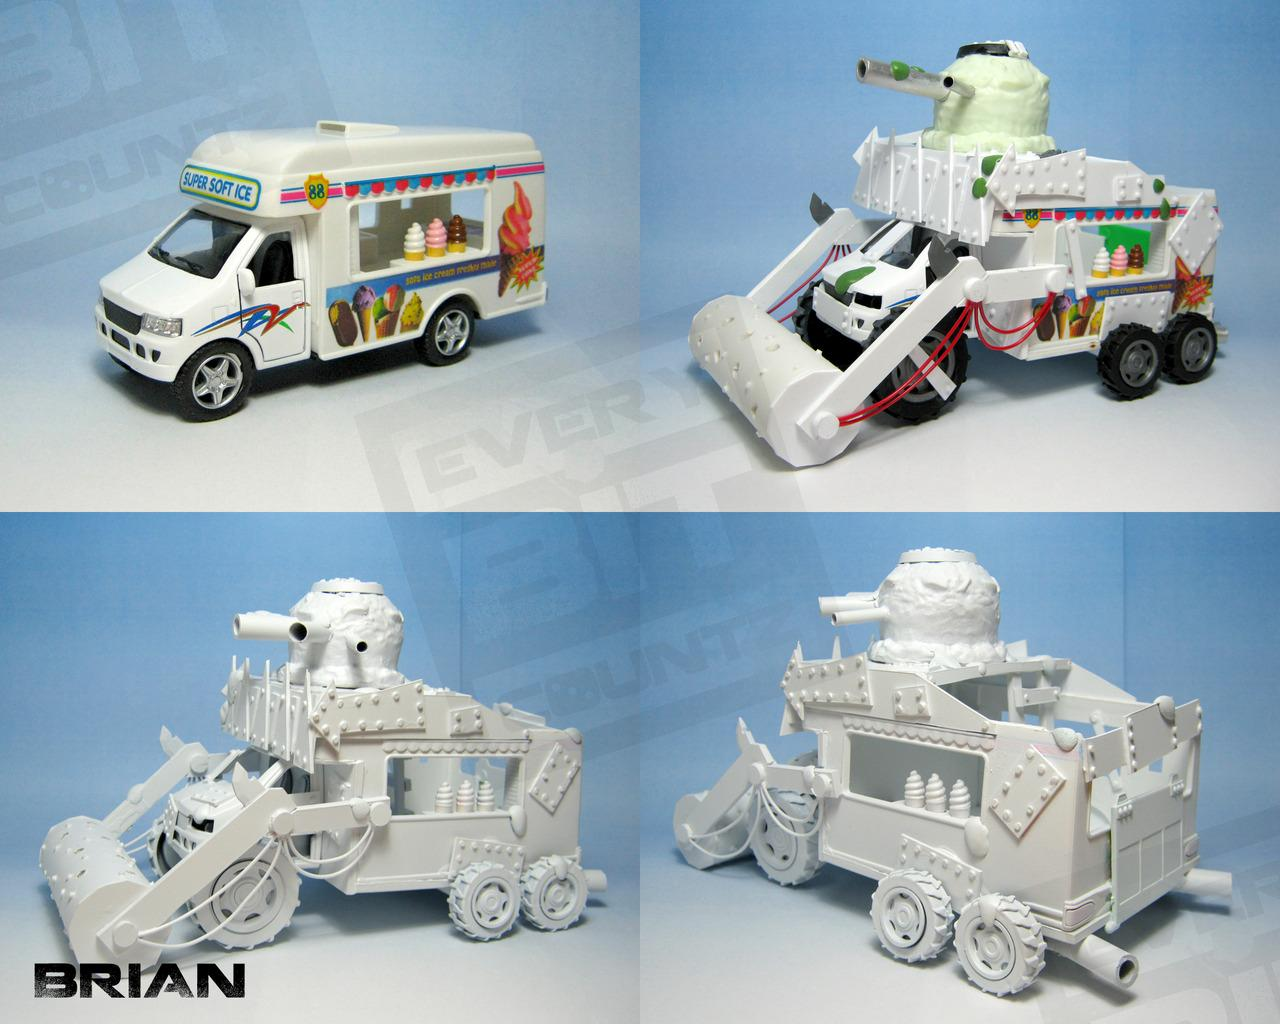 Battlewagon, Blue Skin, Deff Rolla, Every Bit Countz, Ice Cream Truck, Orks, Warhammer 40,000, Winter Orks, Work In Progress